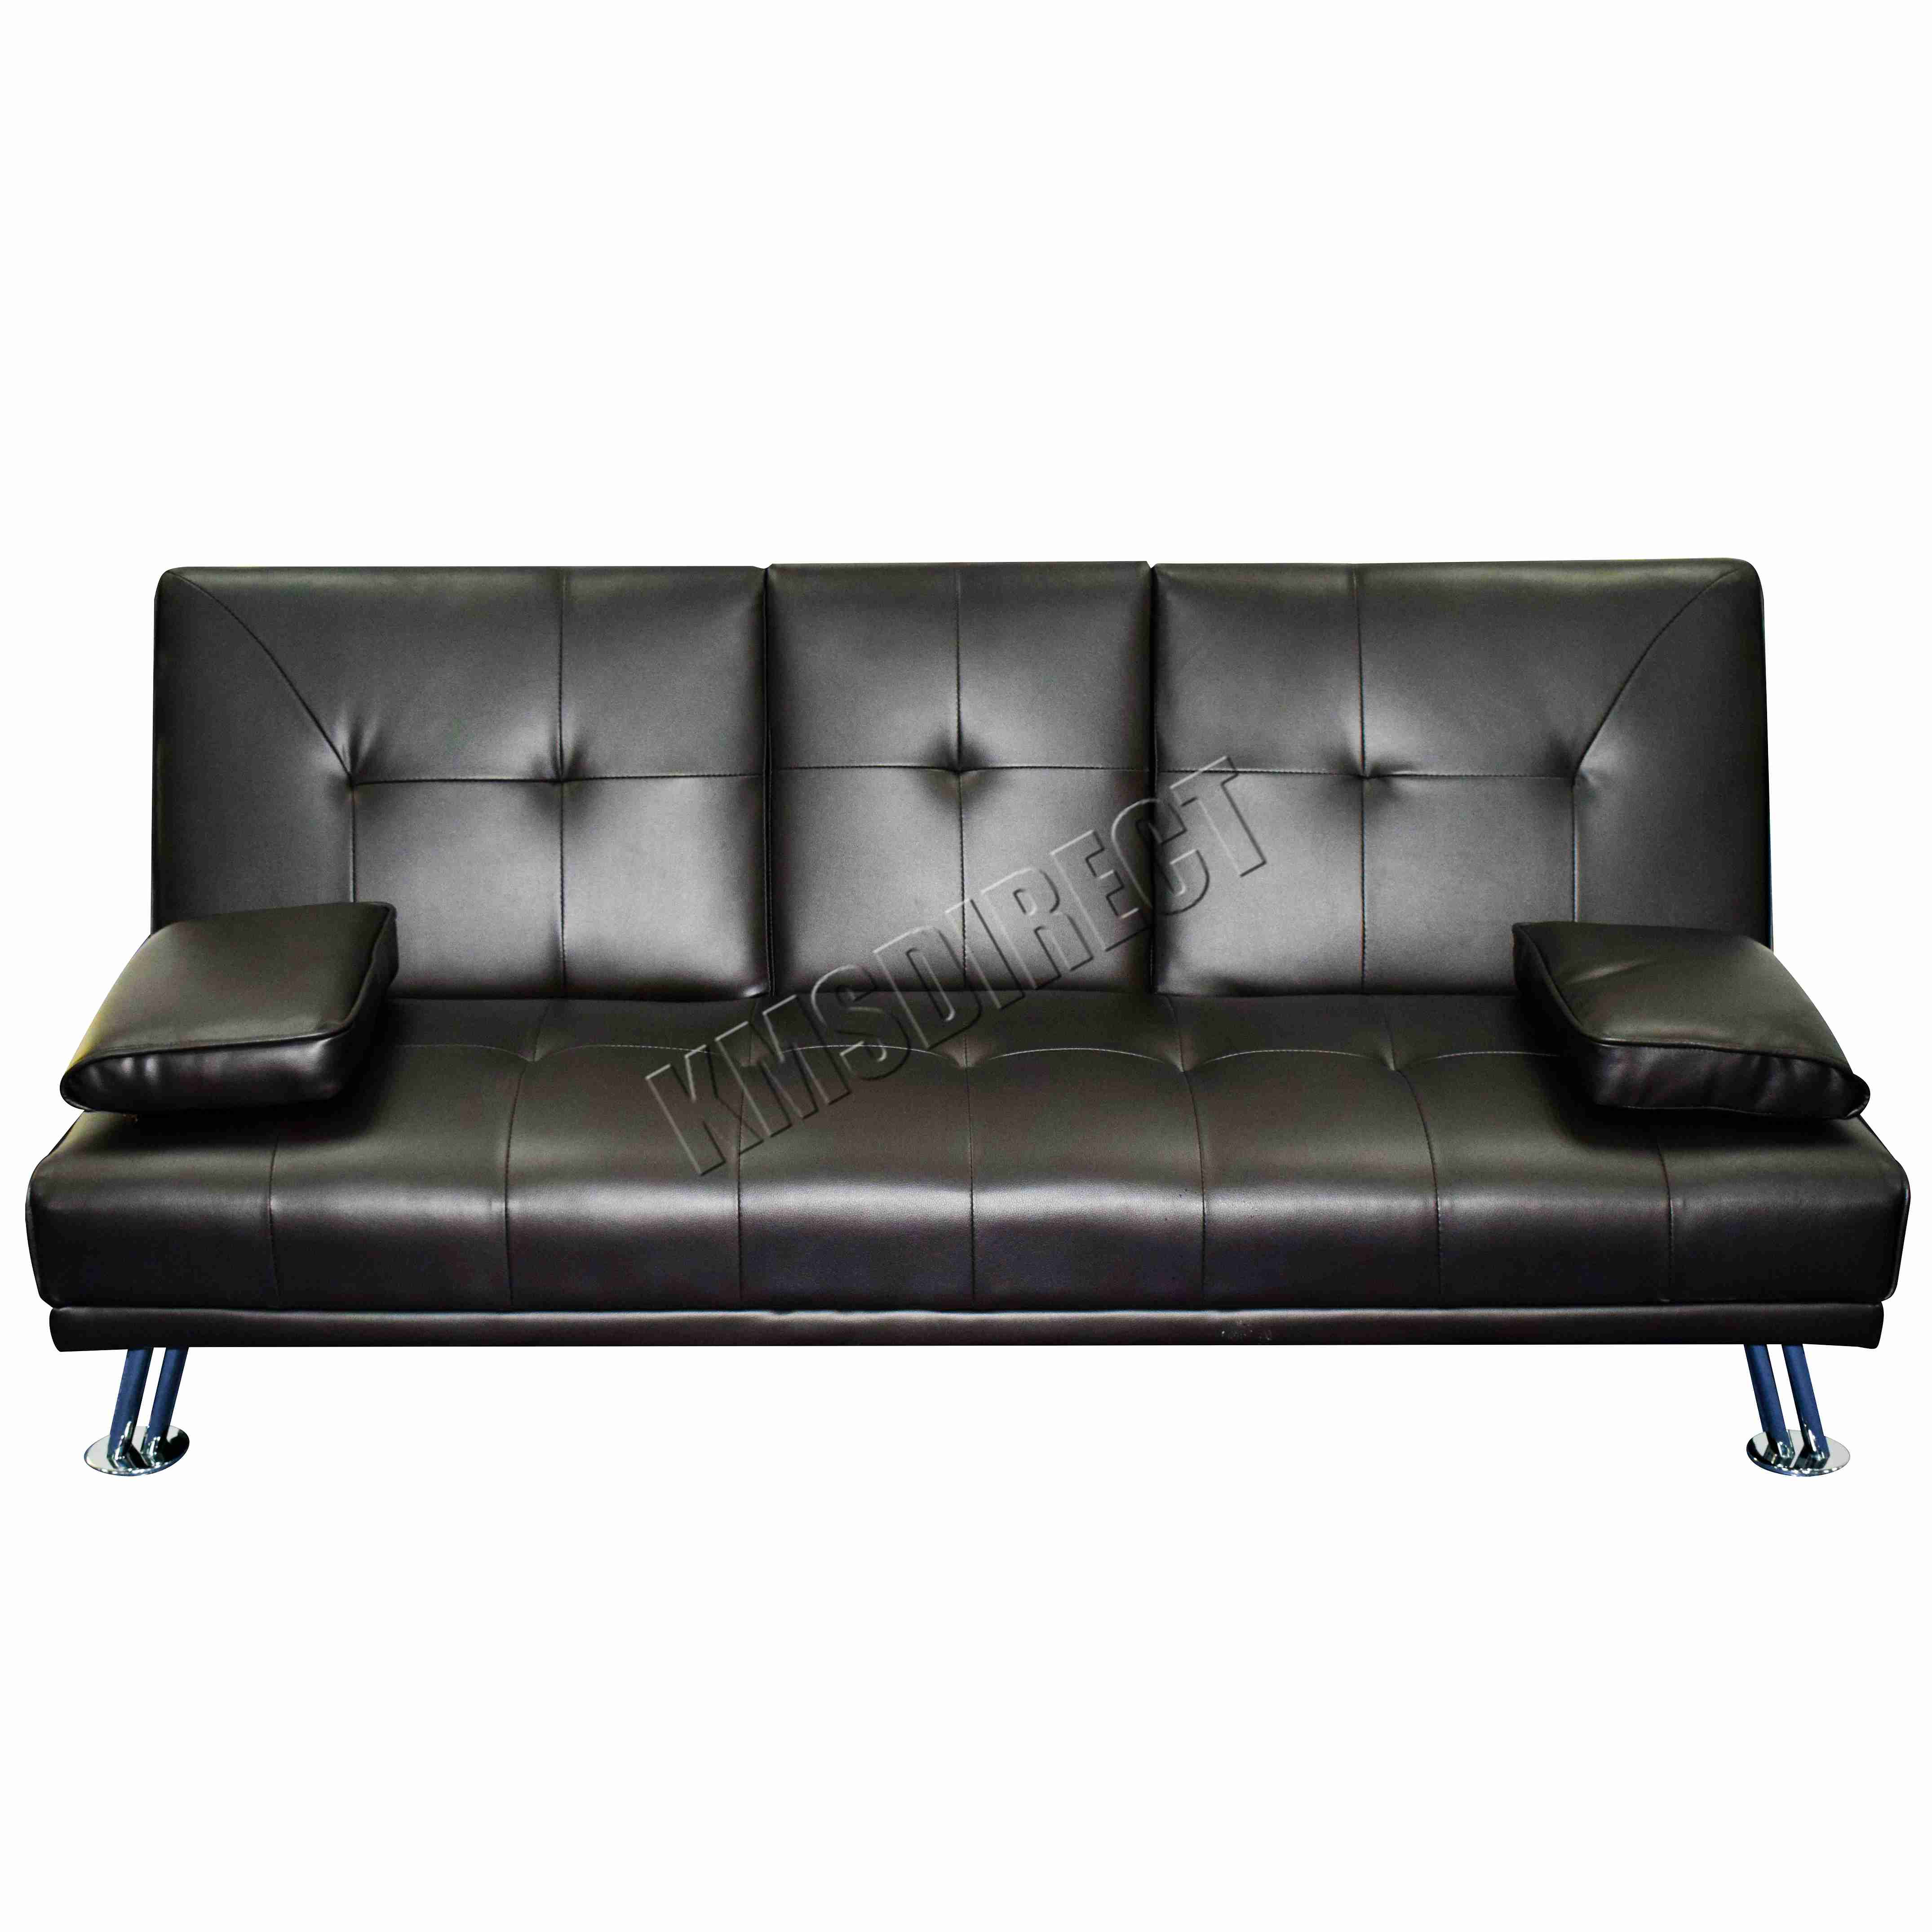 next day sofas customer reviews blue chenille sofa westwood faux leather manhattan bed recliner 3 seater